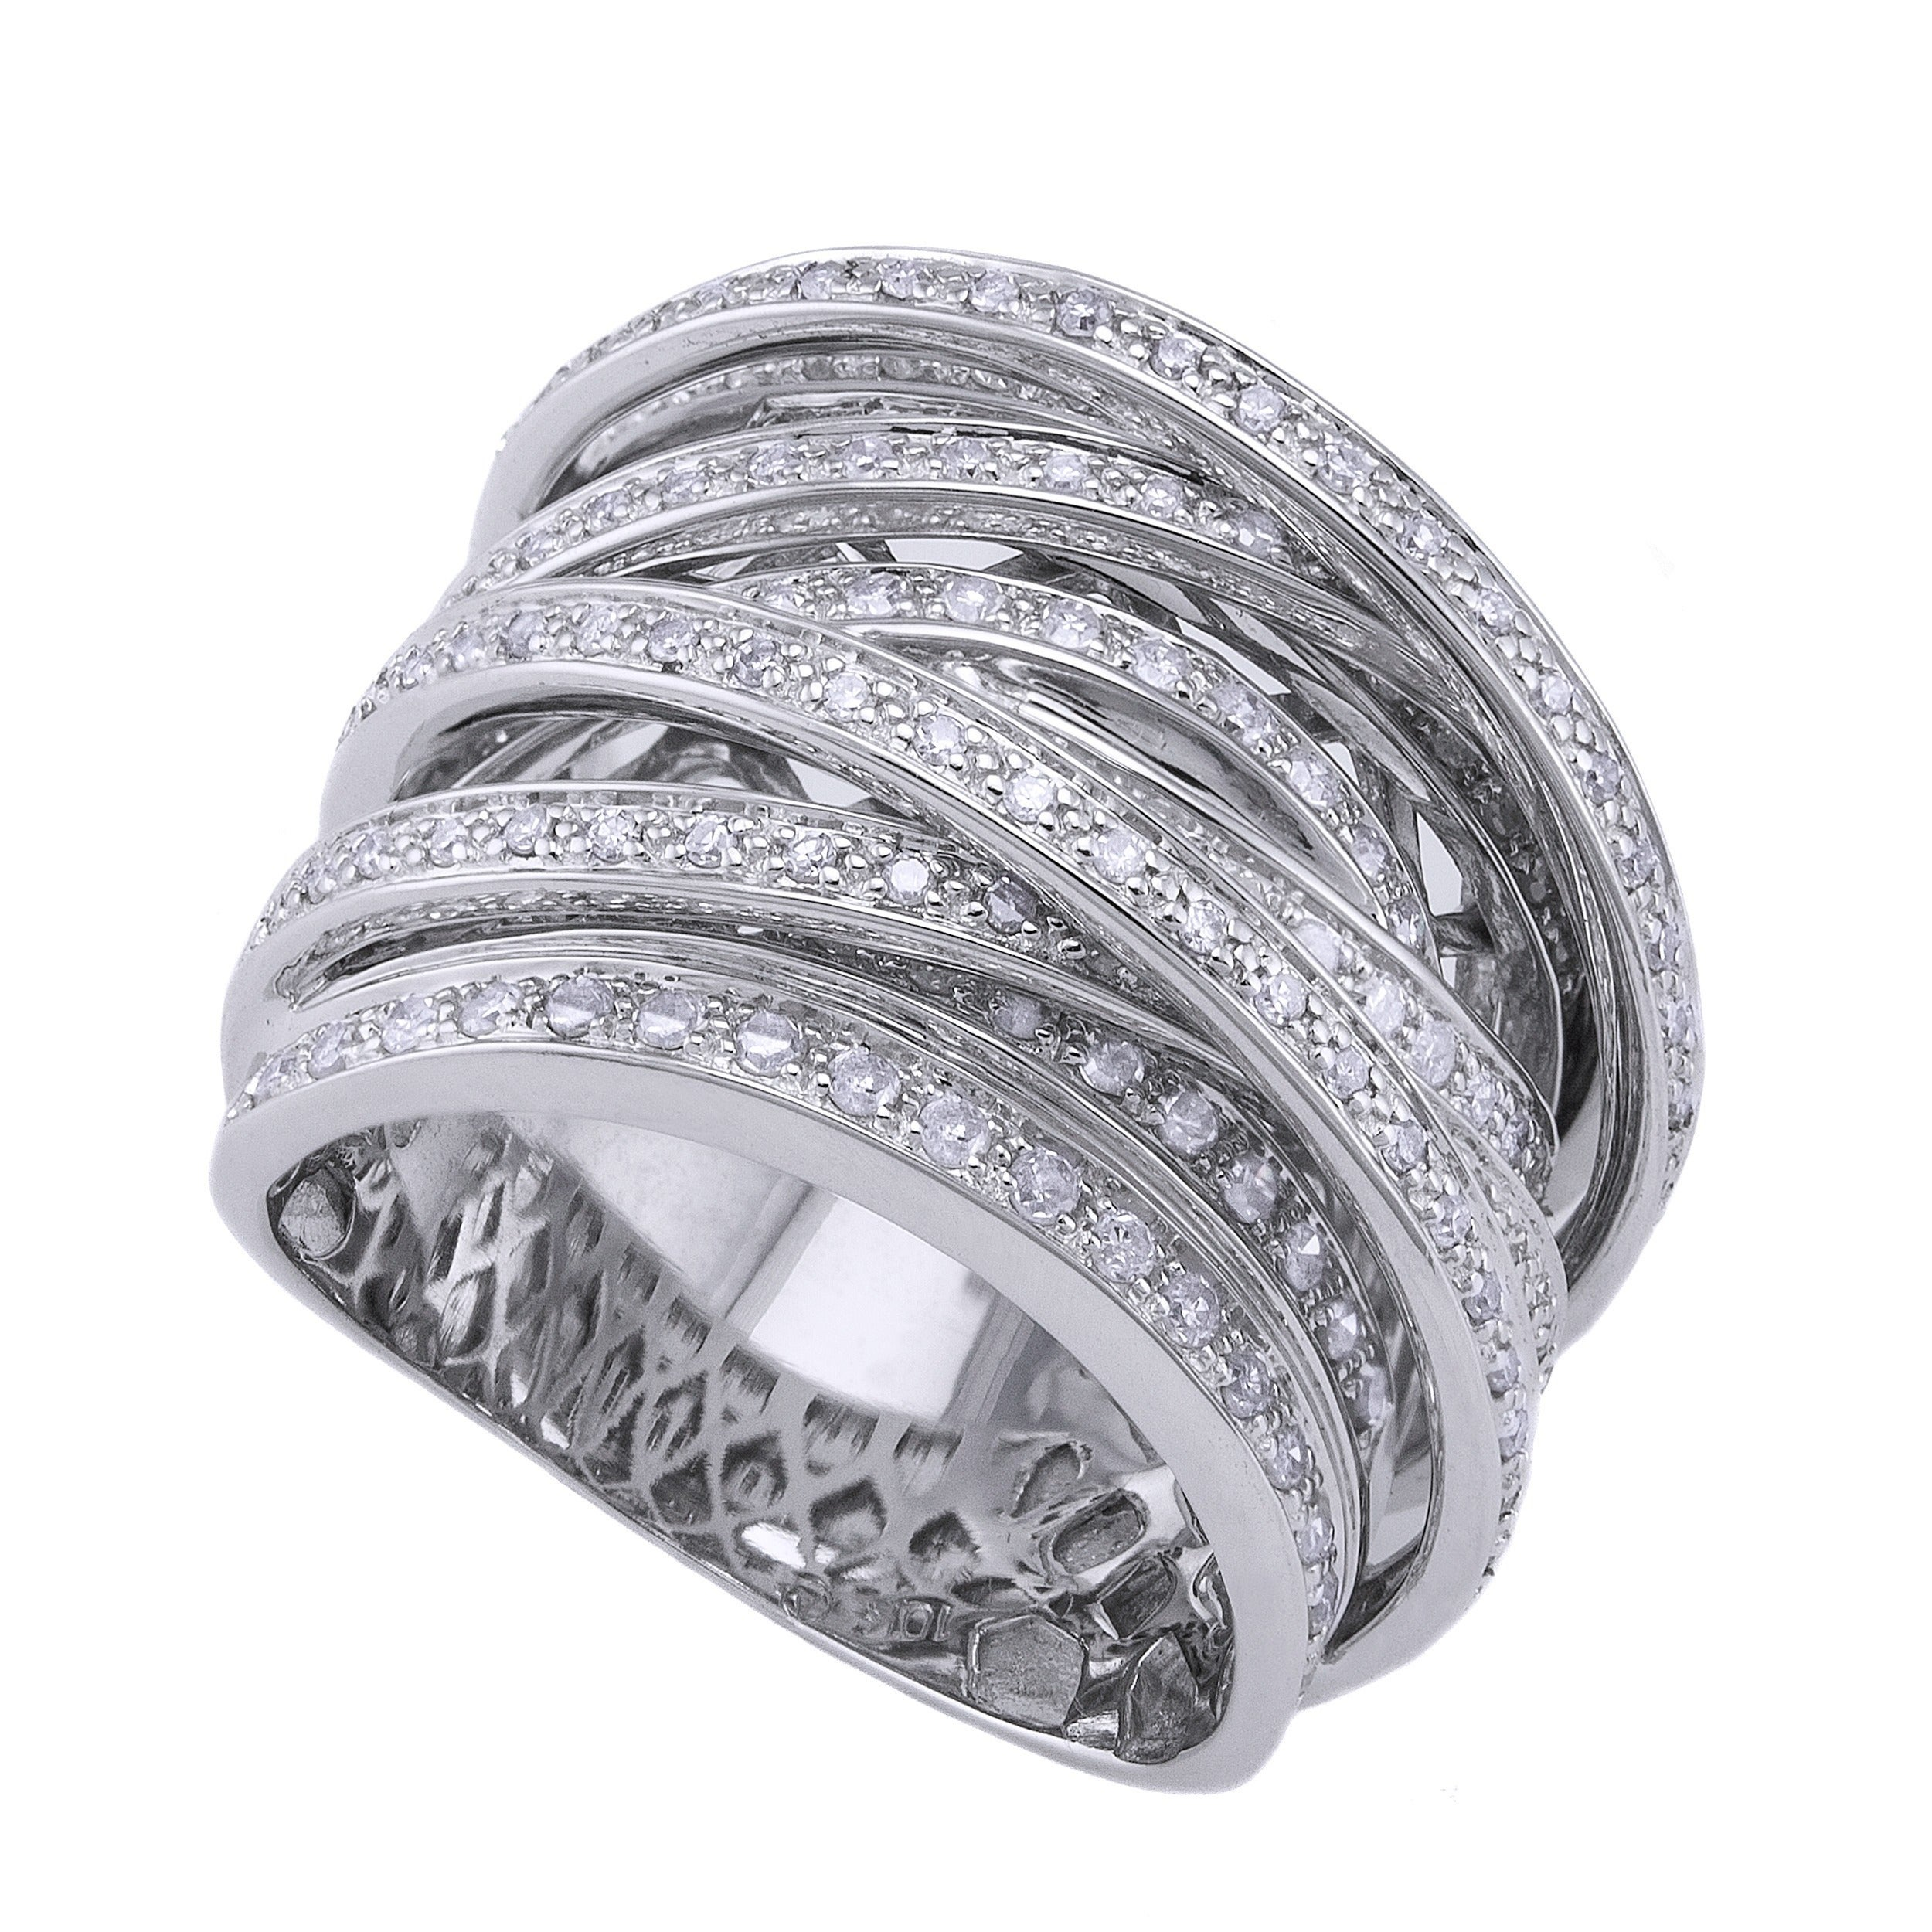 bands multi number category ring l eternity webstore samuel diamond rings style twist gold stone h product diamonds